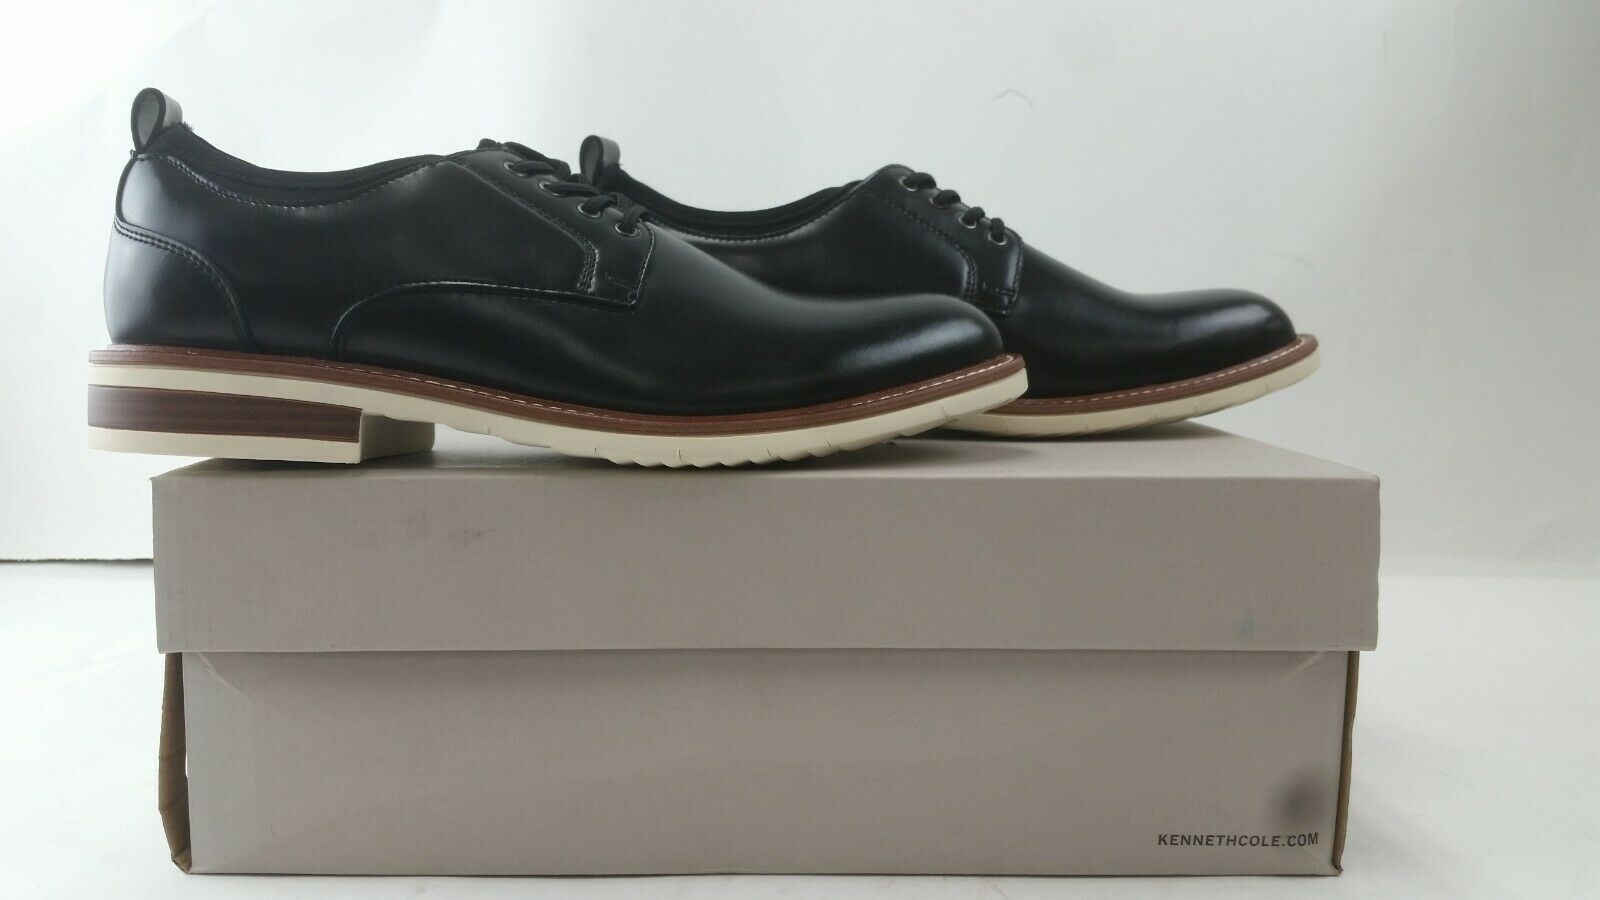 NEW Kenneth Cole Men's Klay Lace Up G with a Flexible Sole Oxford, BK 9 M